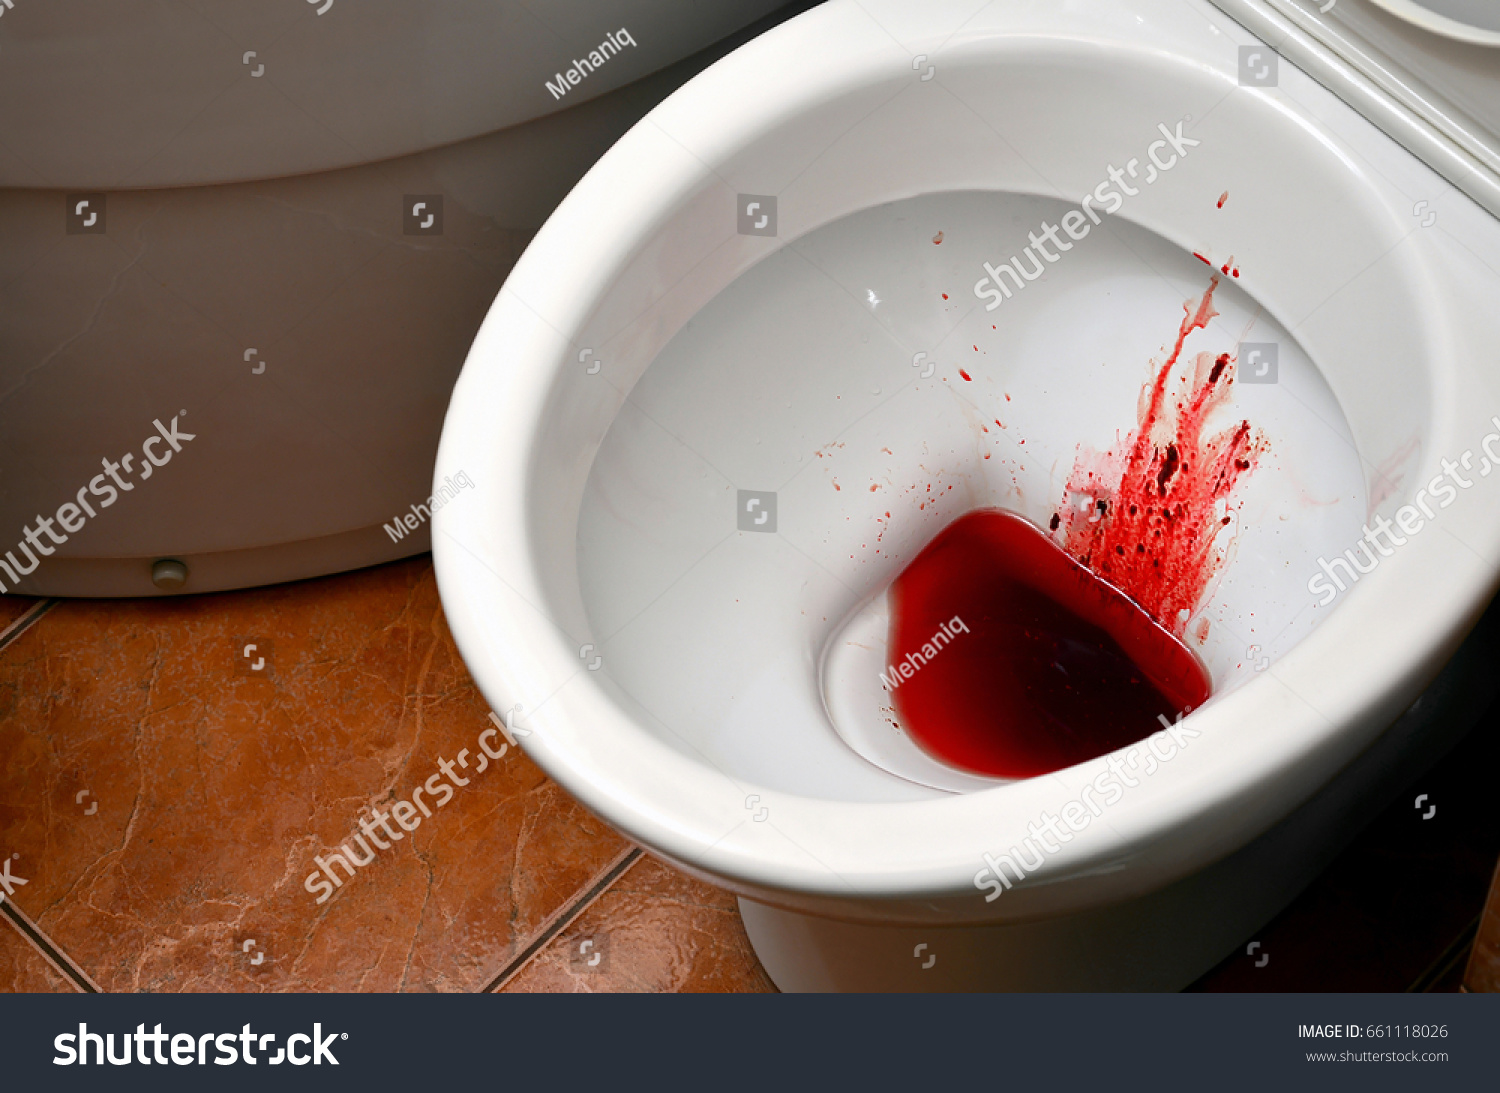 Can You Get An Std From Blood On A Toilet Seat Nice Houzz